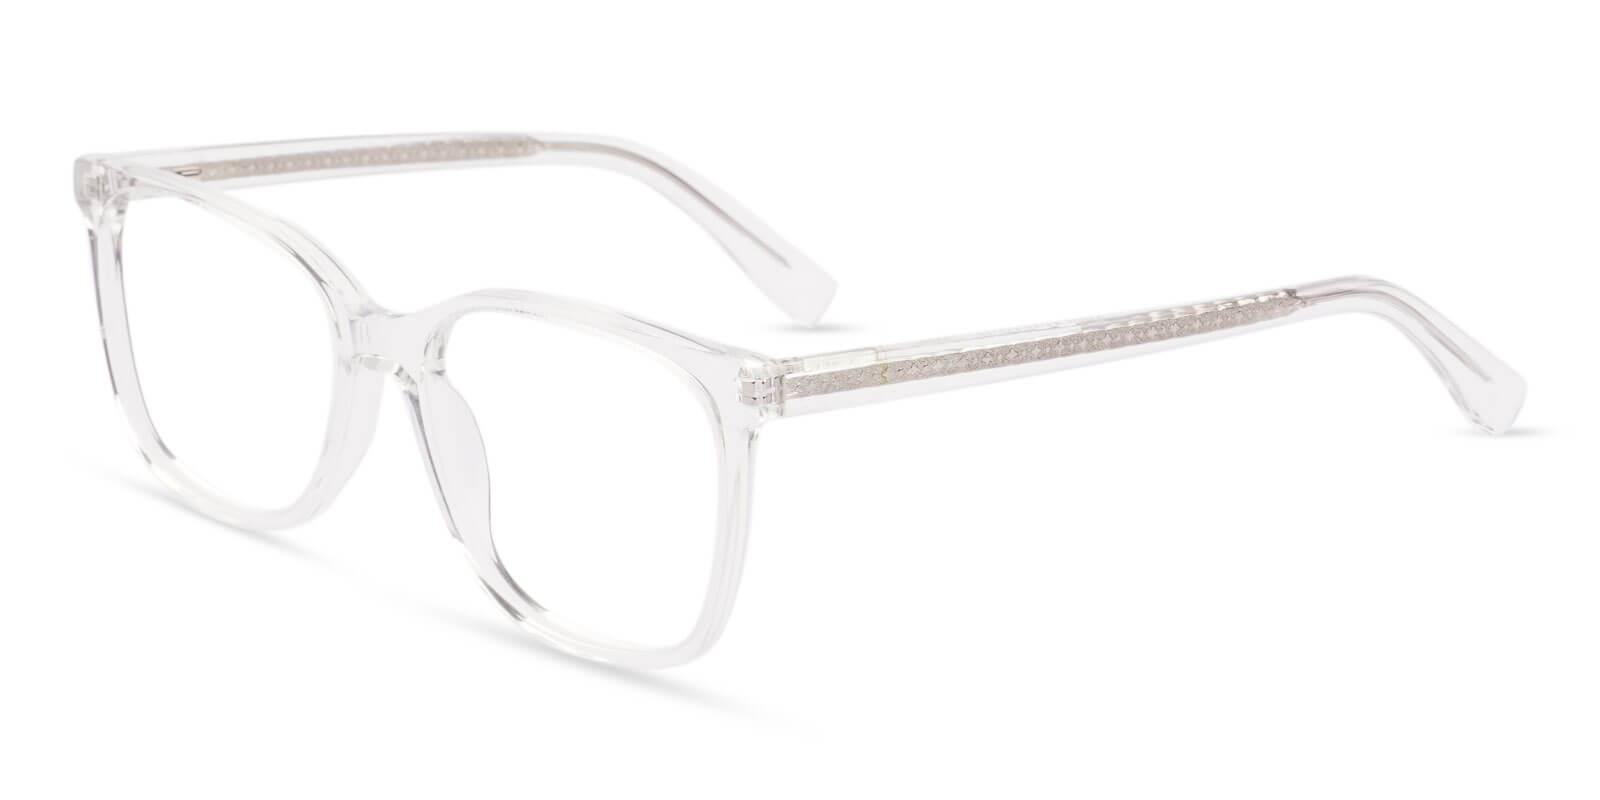 Groove Translucent Acetate Eyeglasses , SpringHinges , UniversalBridgeFit Frames from ABBE Glasses